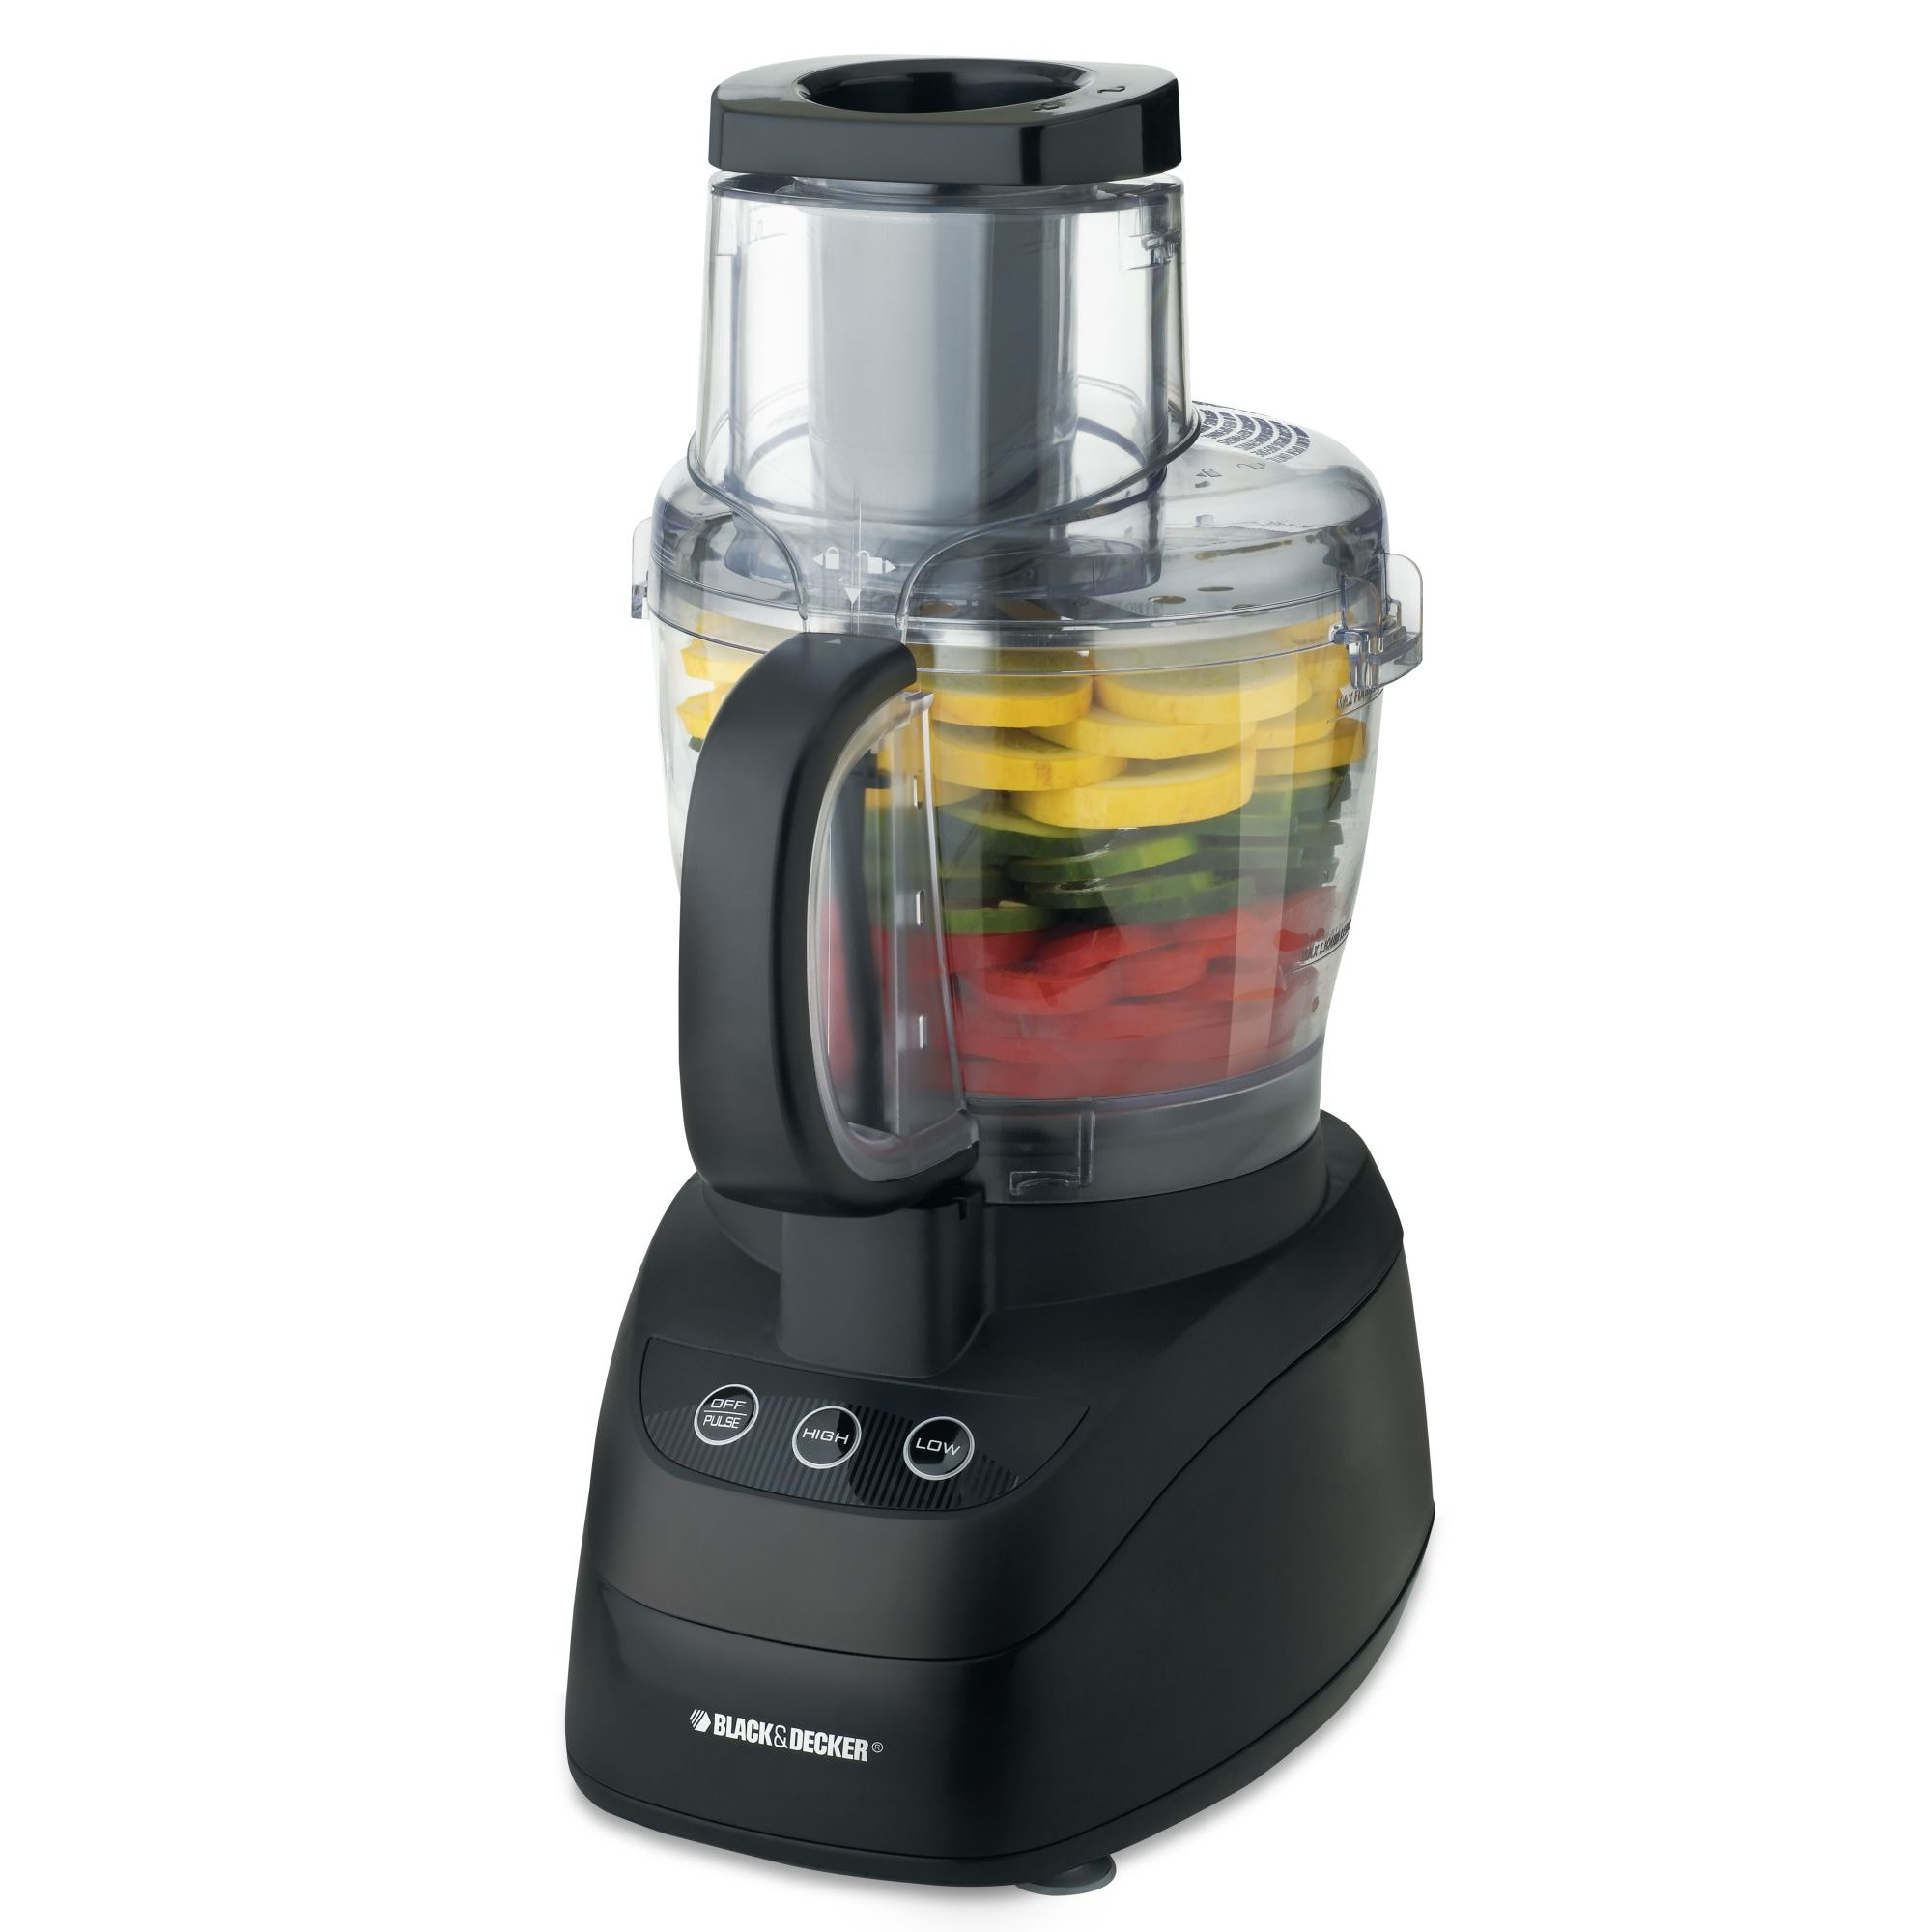 Black & Decker 10-Cup Food Processor - Black